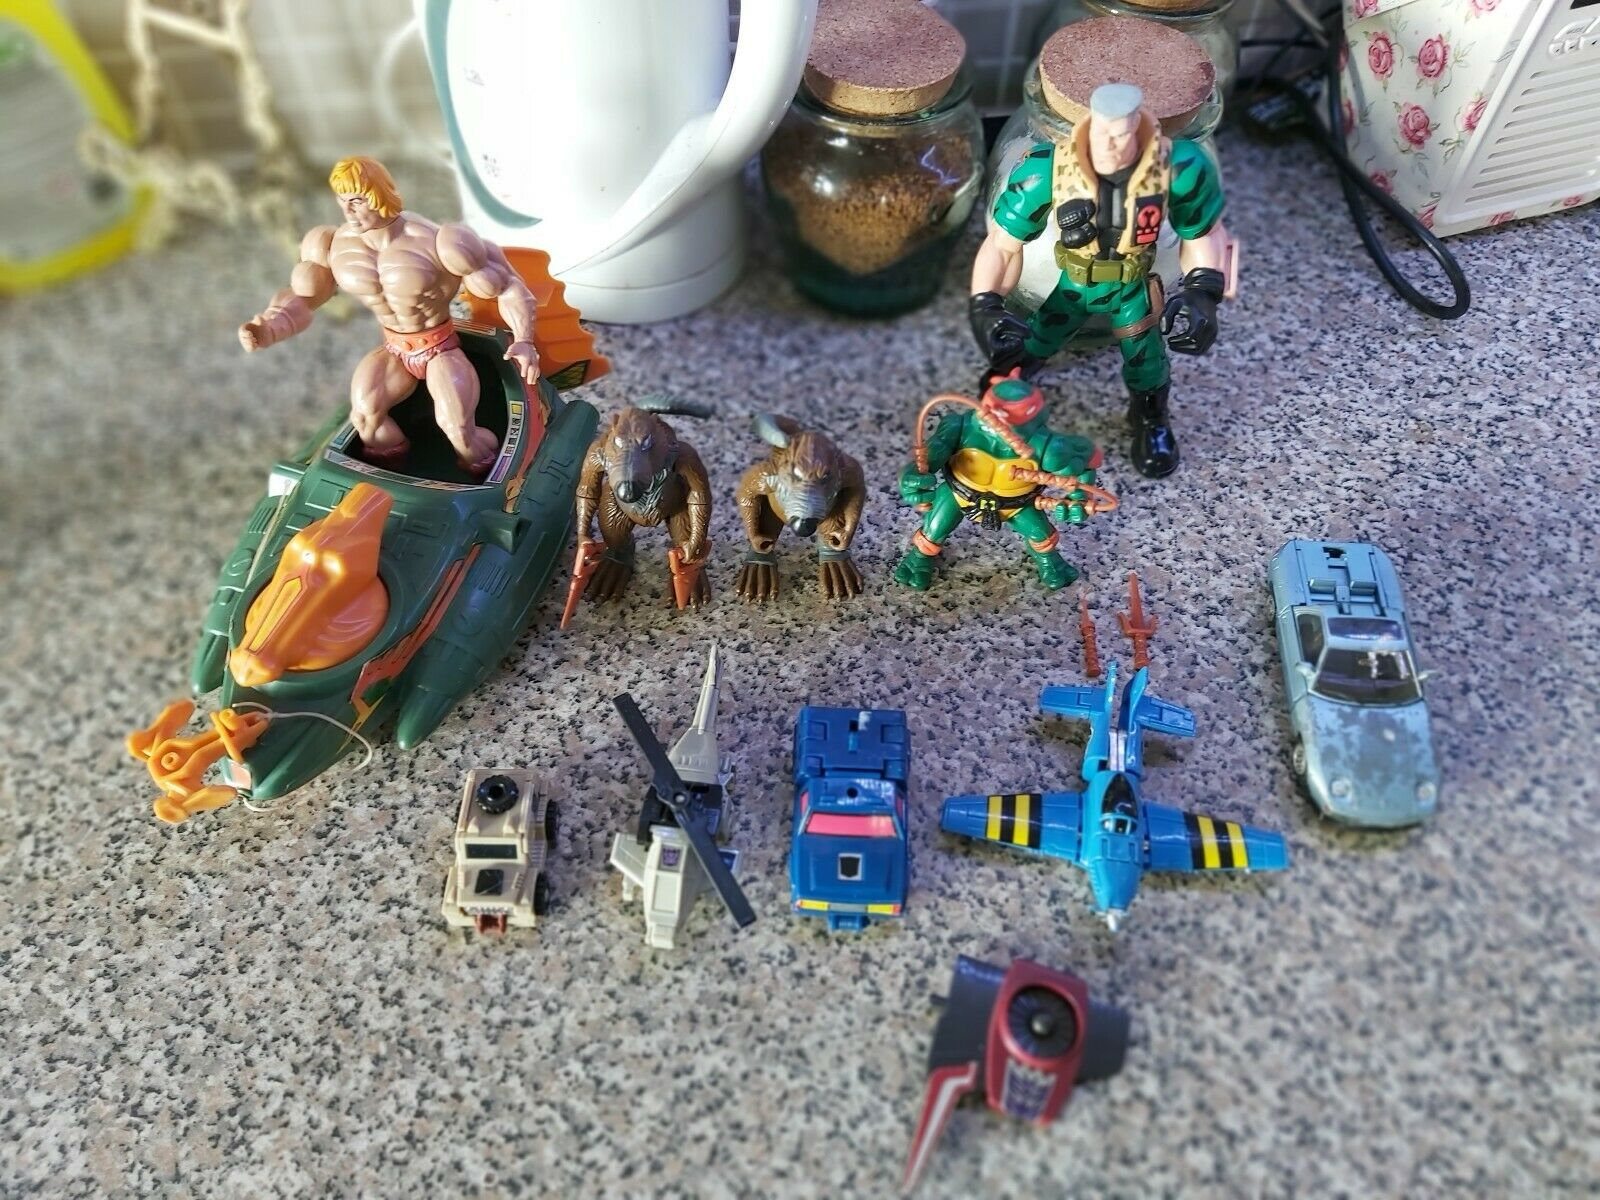 Vintage Toys He Man Turtles Small Soldiers Transformers Go Bots bundle